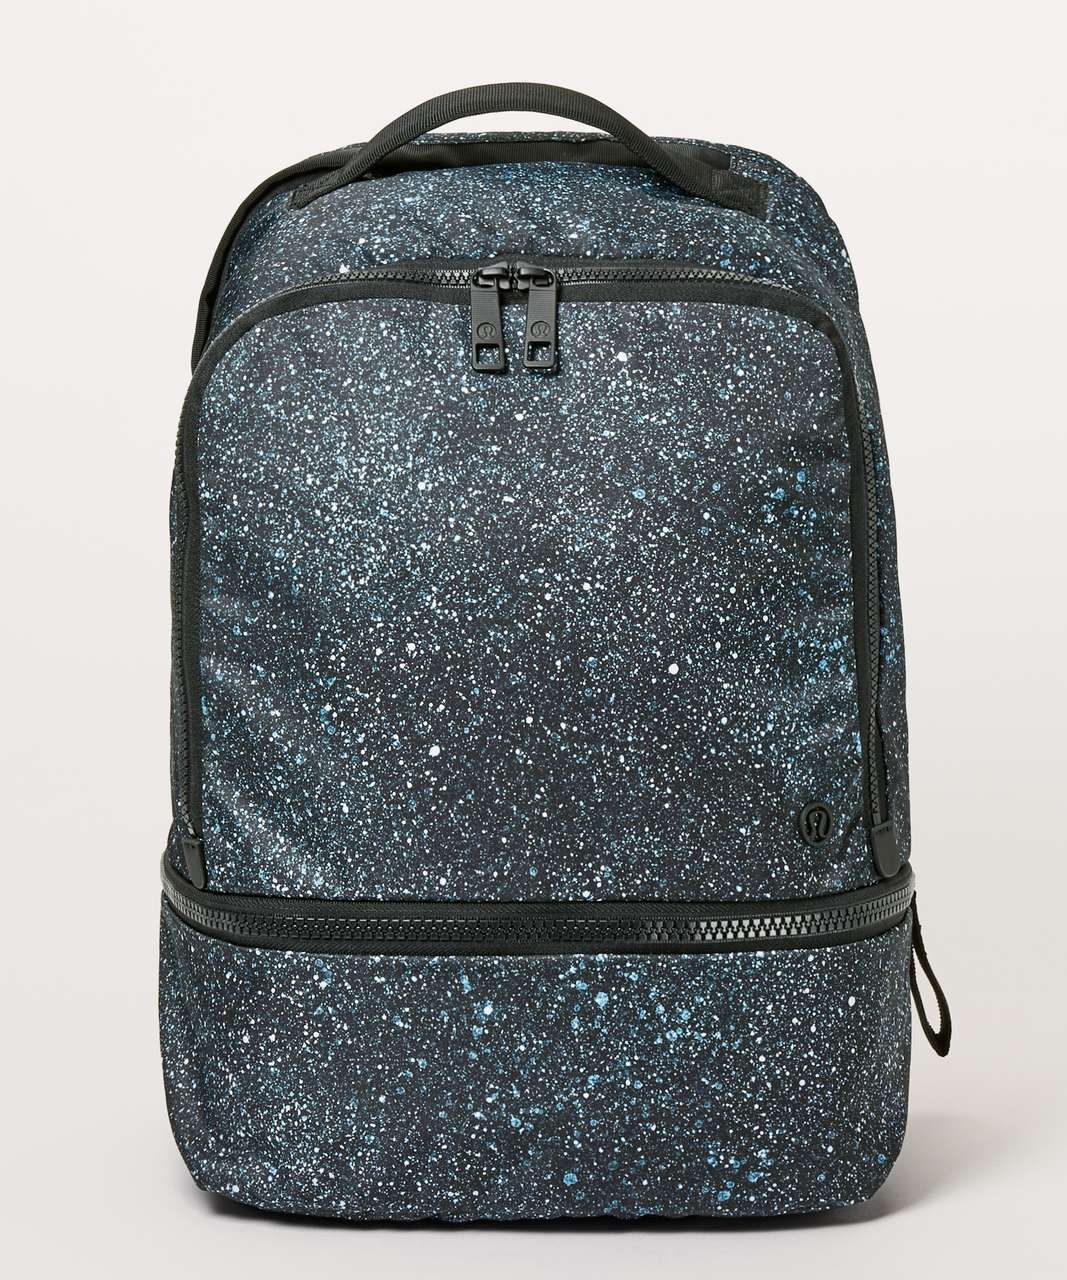 Lululemon City Adventurer Backpack 17L - Mineralize Multi / Black